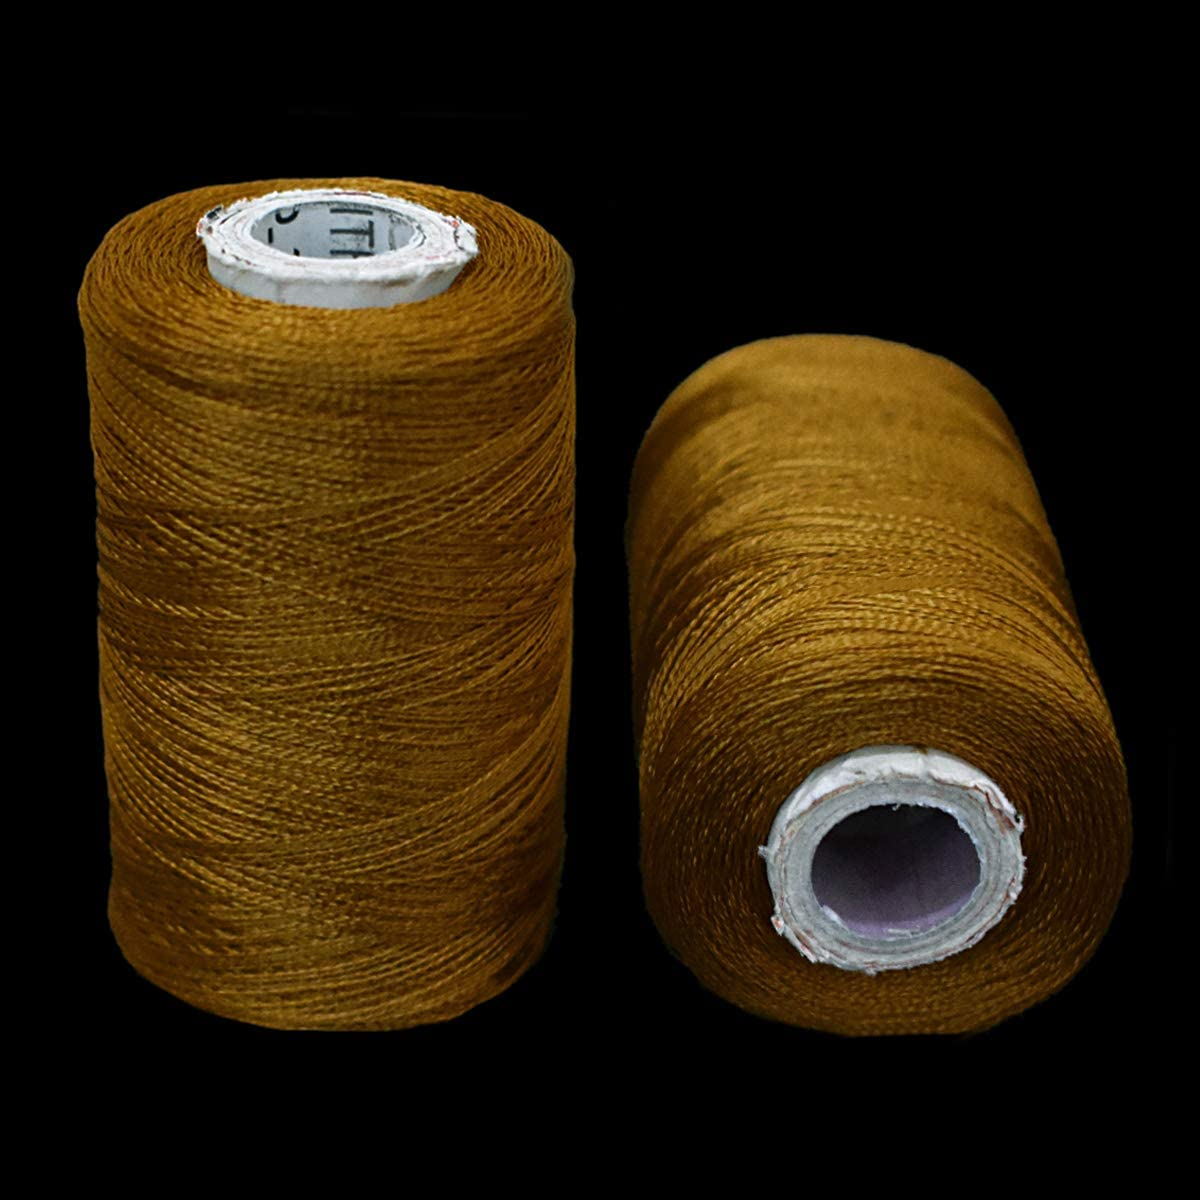 Embroidery and Jewelry Making Combo Pack Embroiderymaterial Art Silk Threads for Craft Pack of 10 Rolls